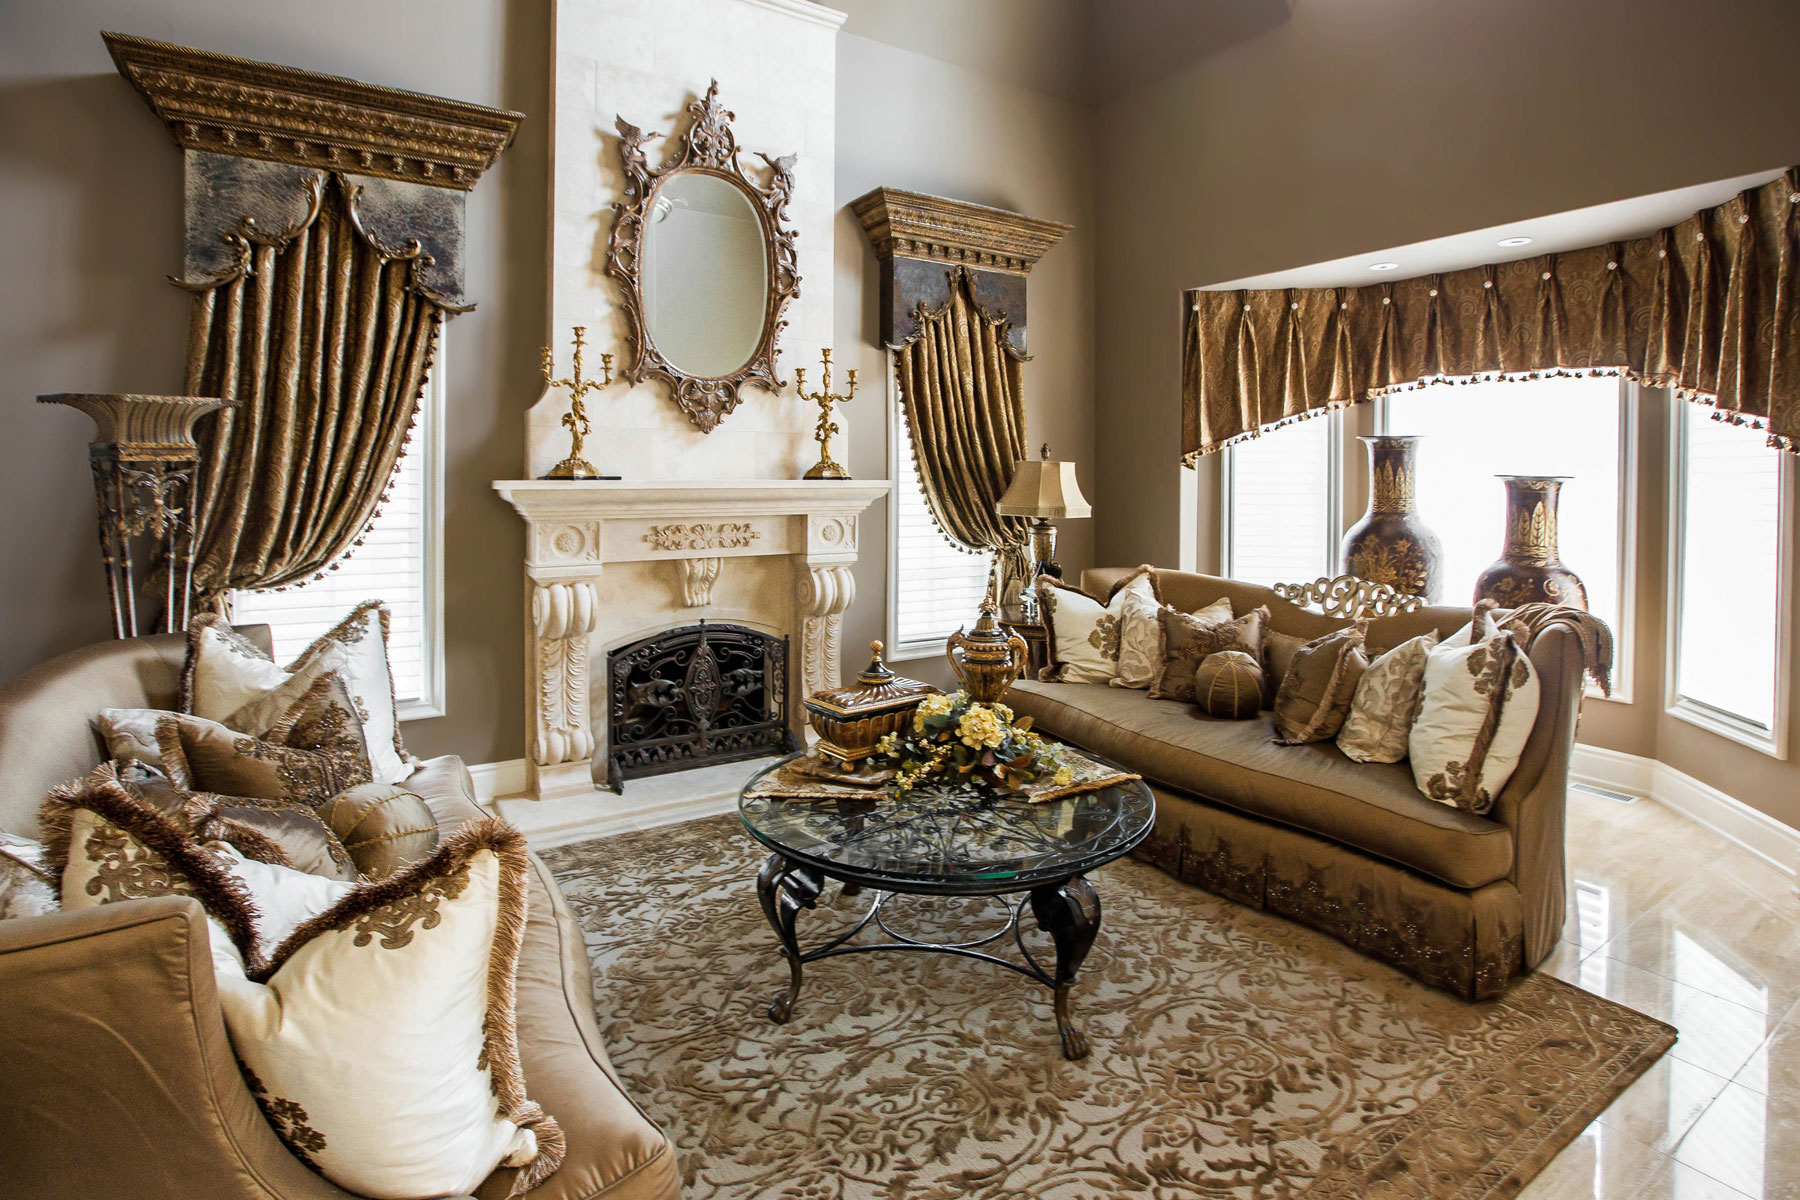 Living Room and Family Room Design - Linly Designs on Room Decor Photos  id=79019